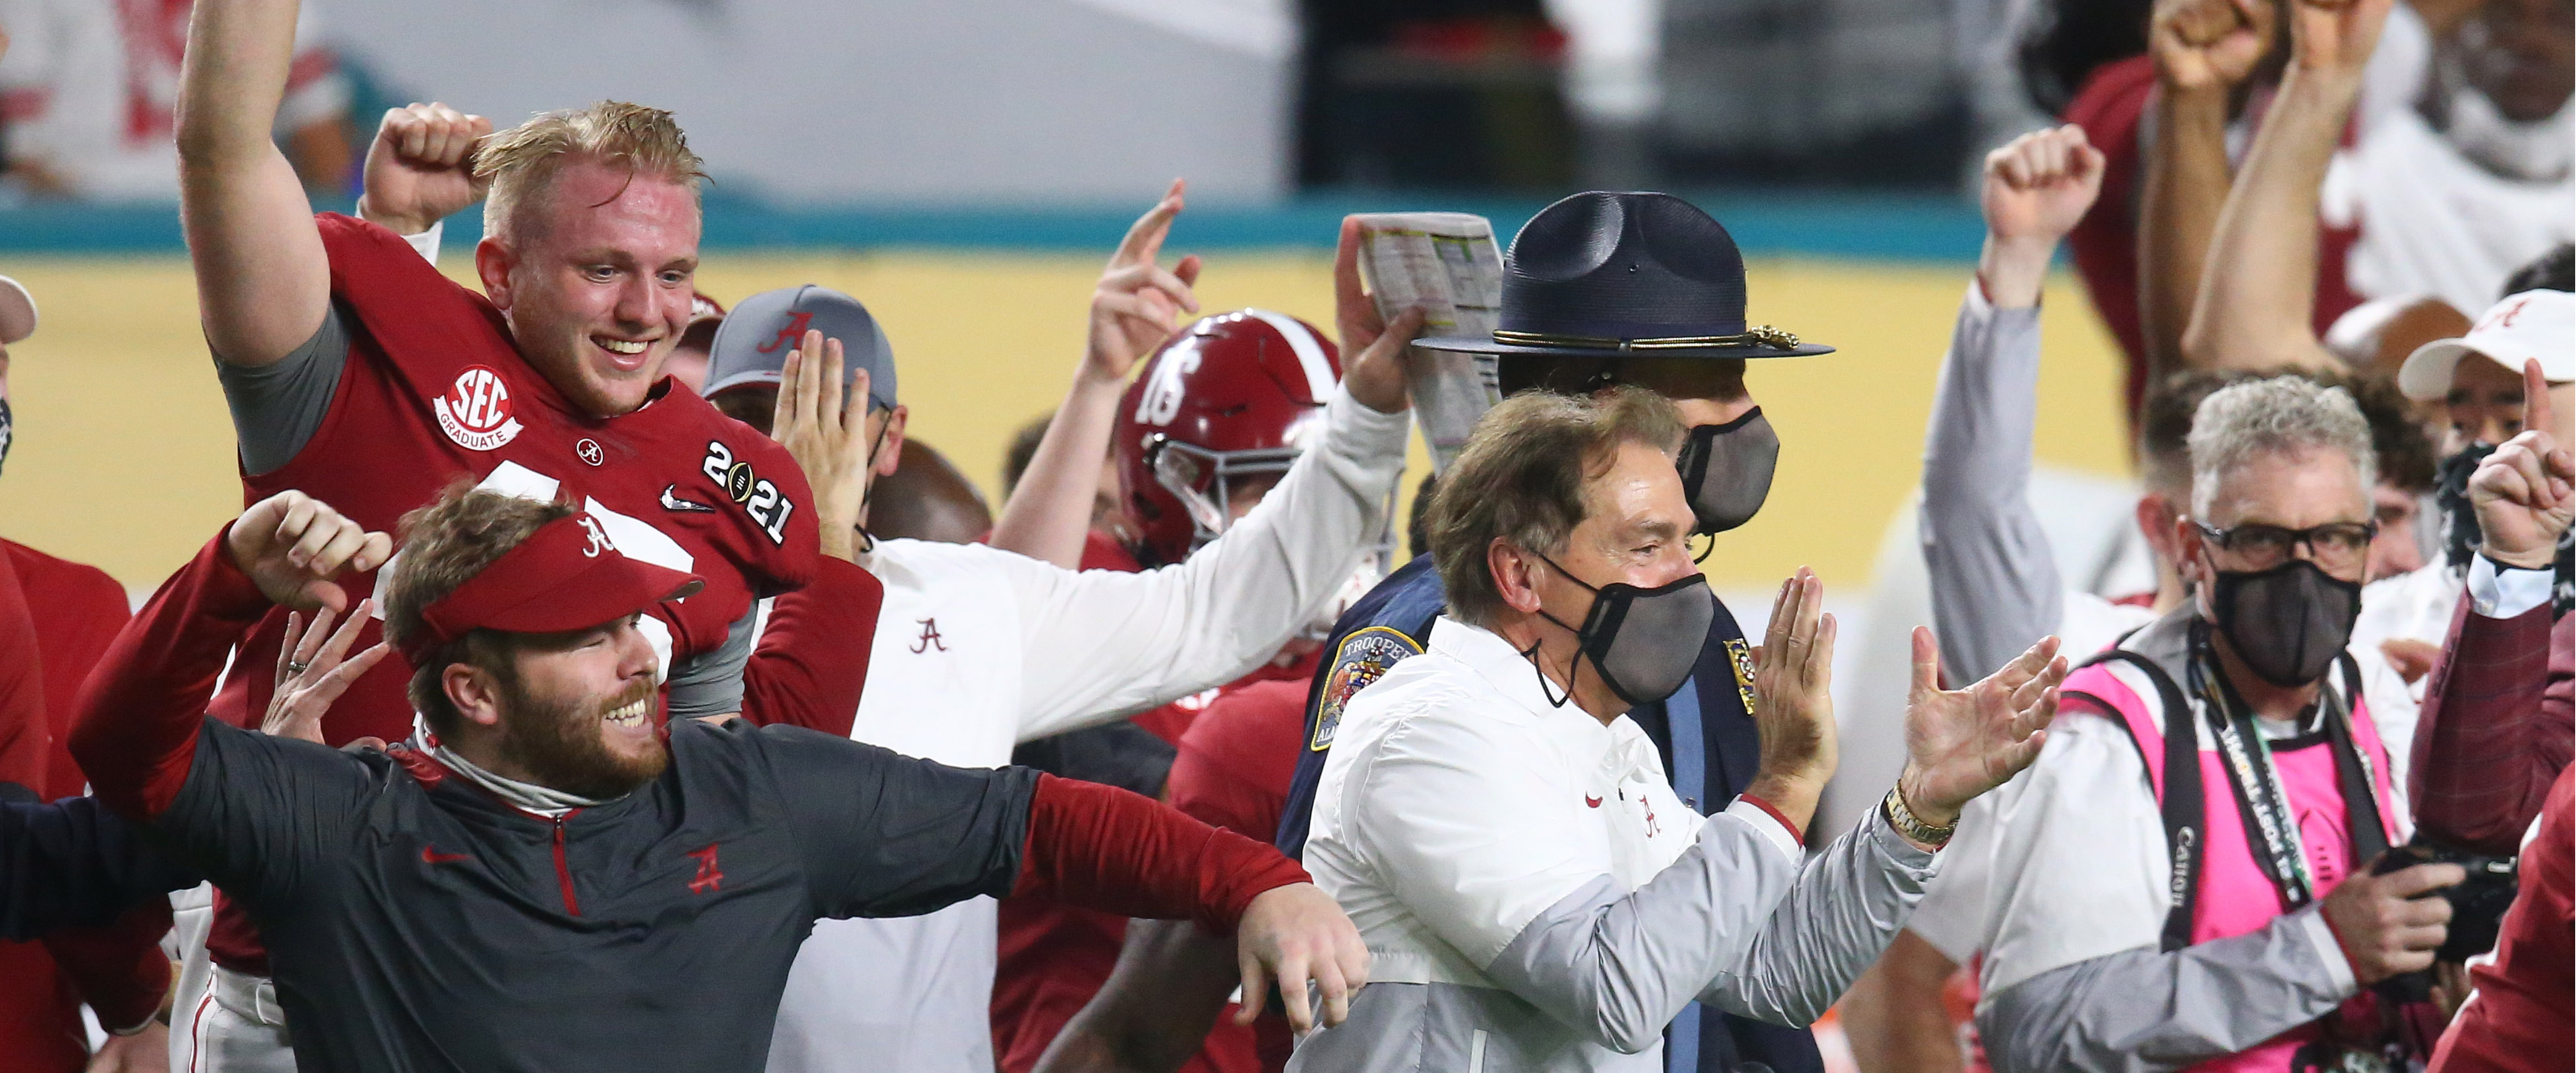 Amidst a global pandemic, Nick Saban solidified his legacy